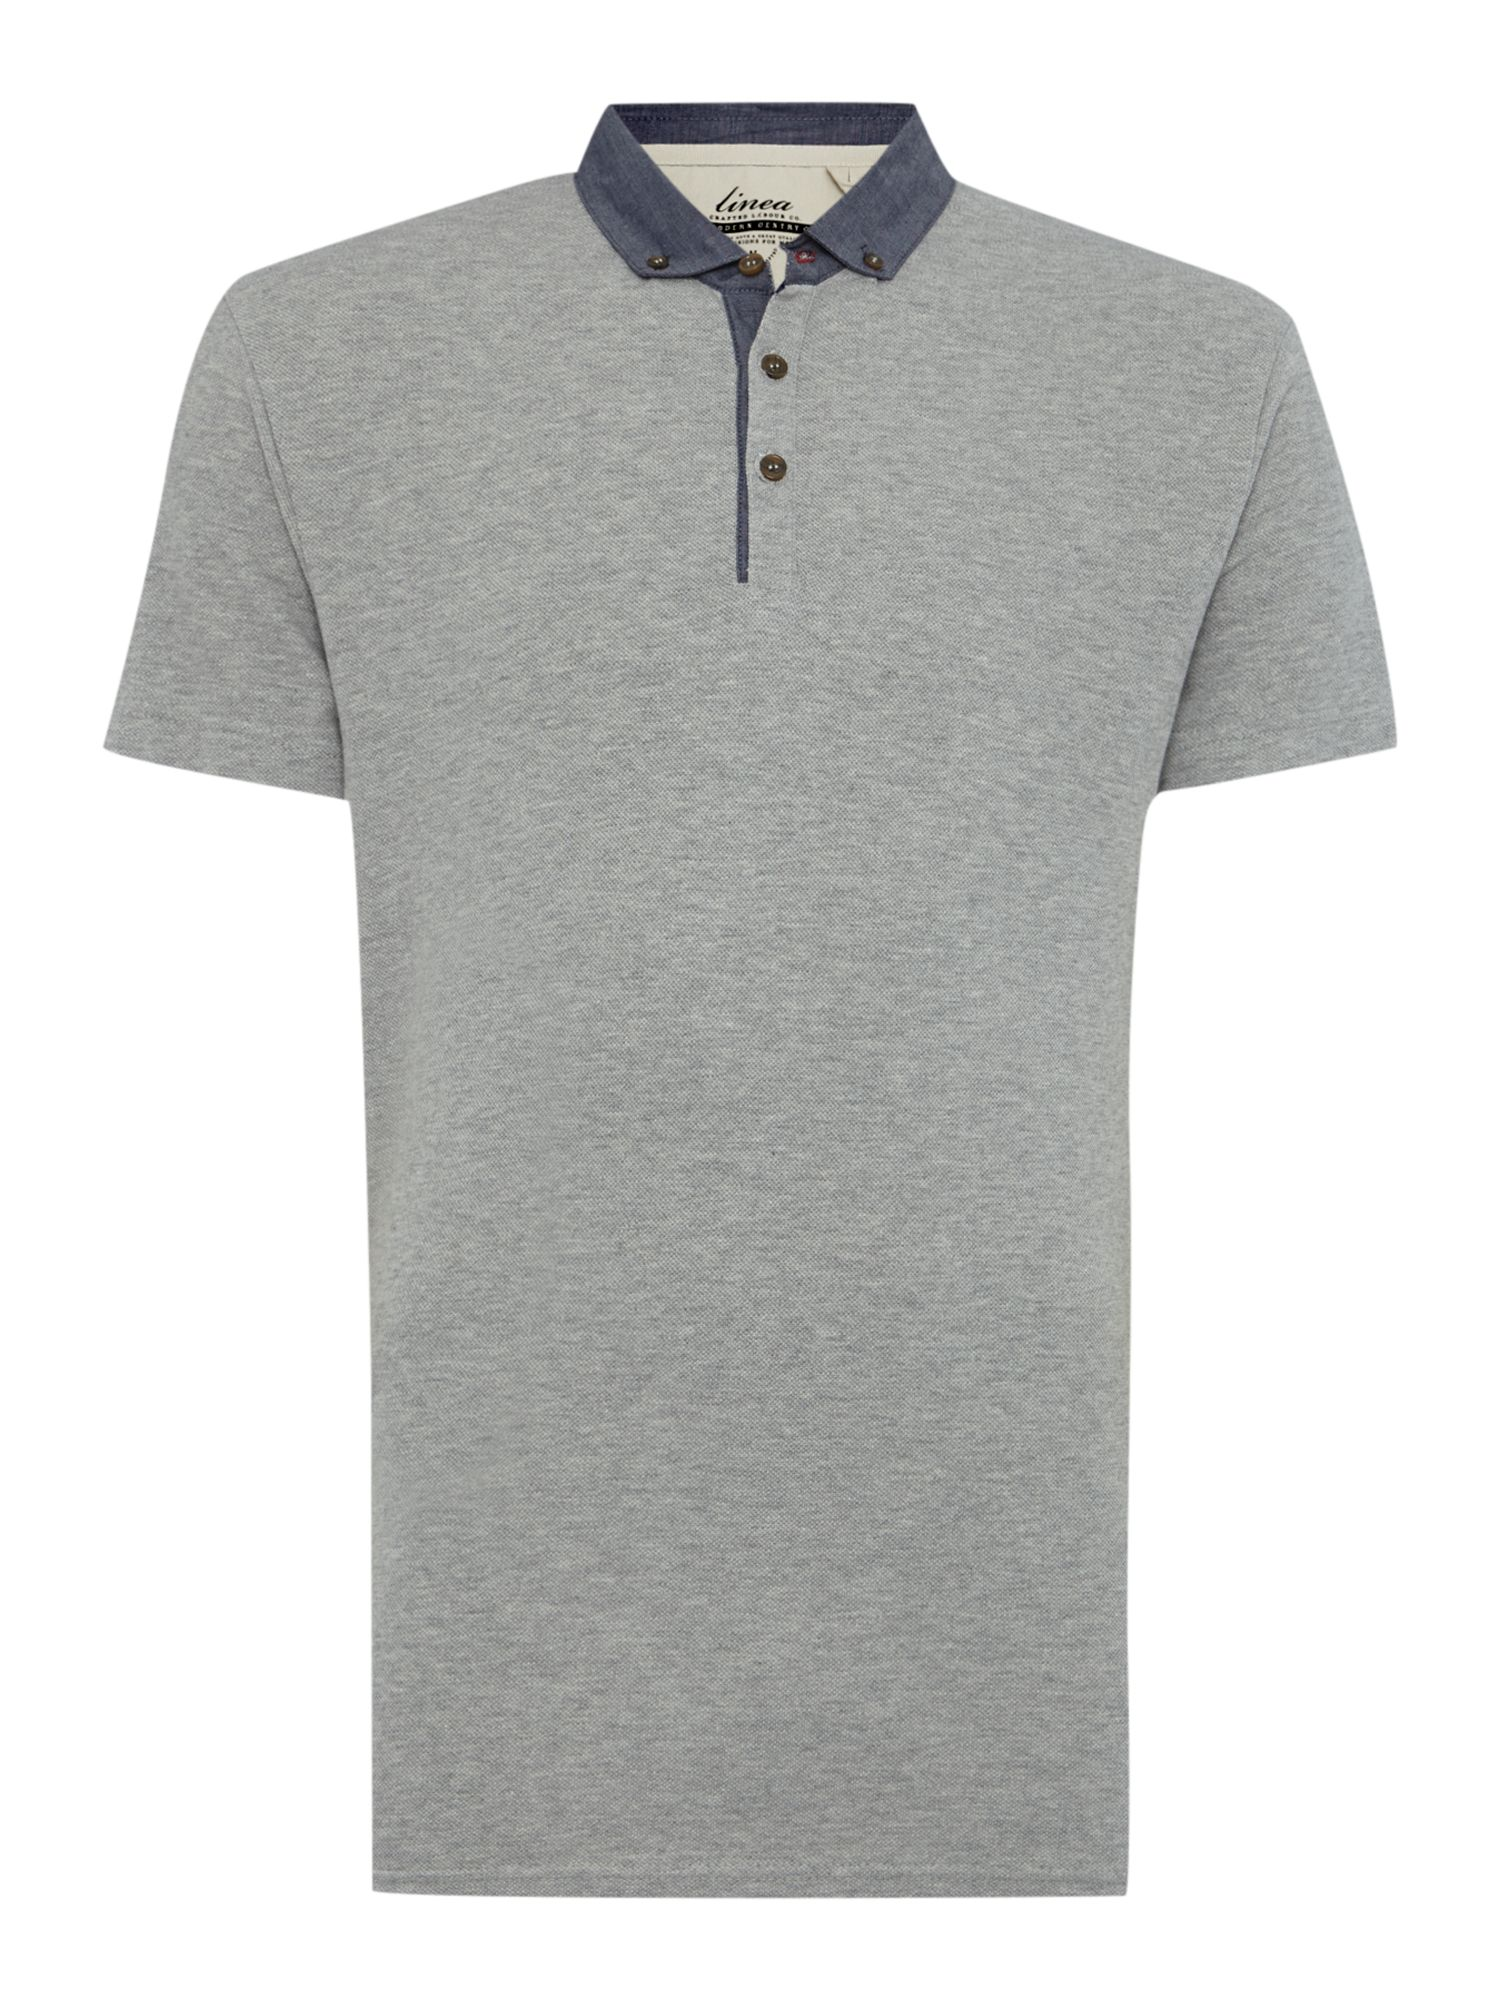 george pique chambray collar polo